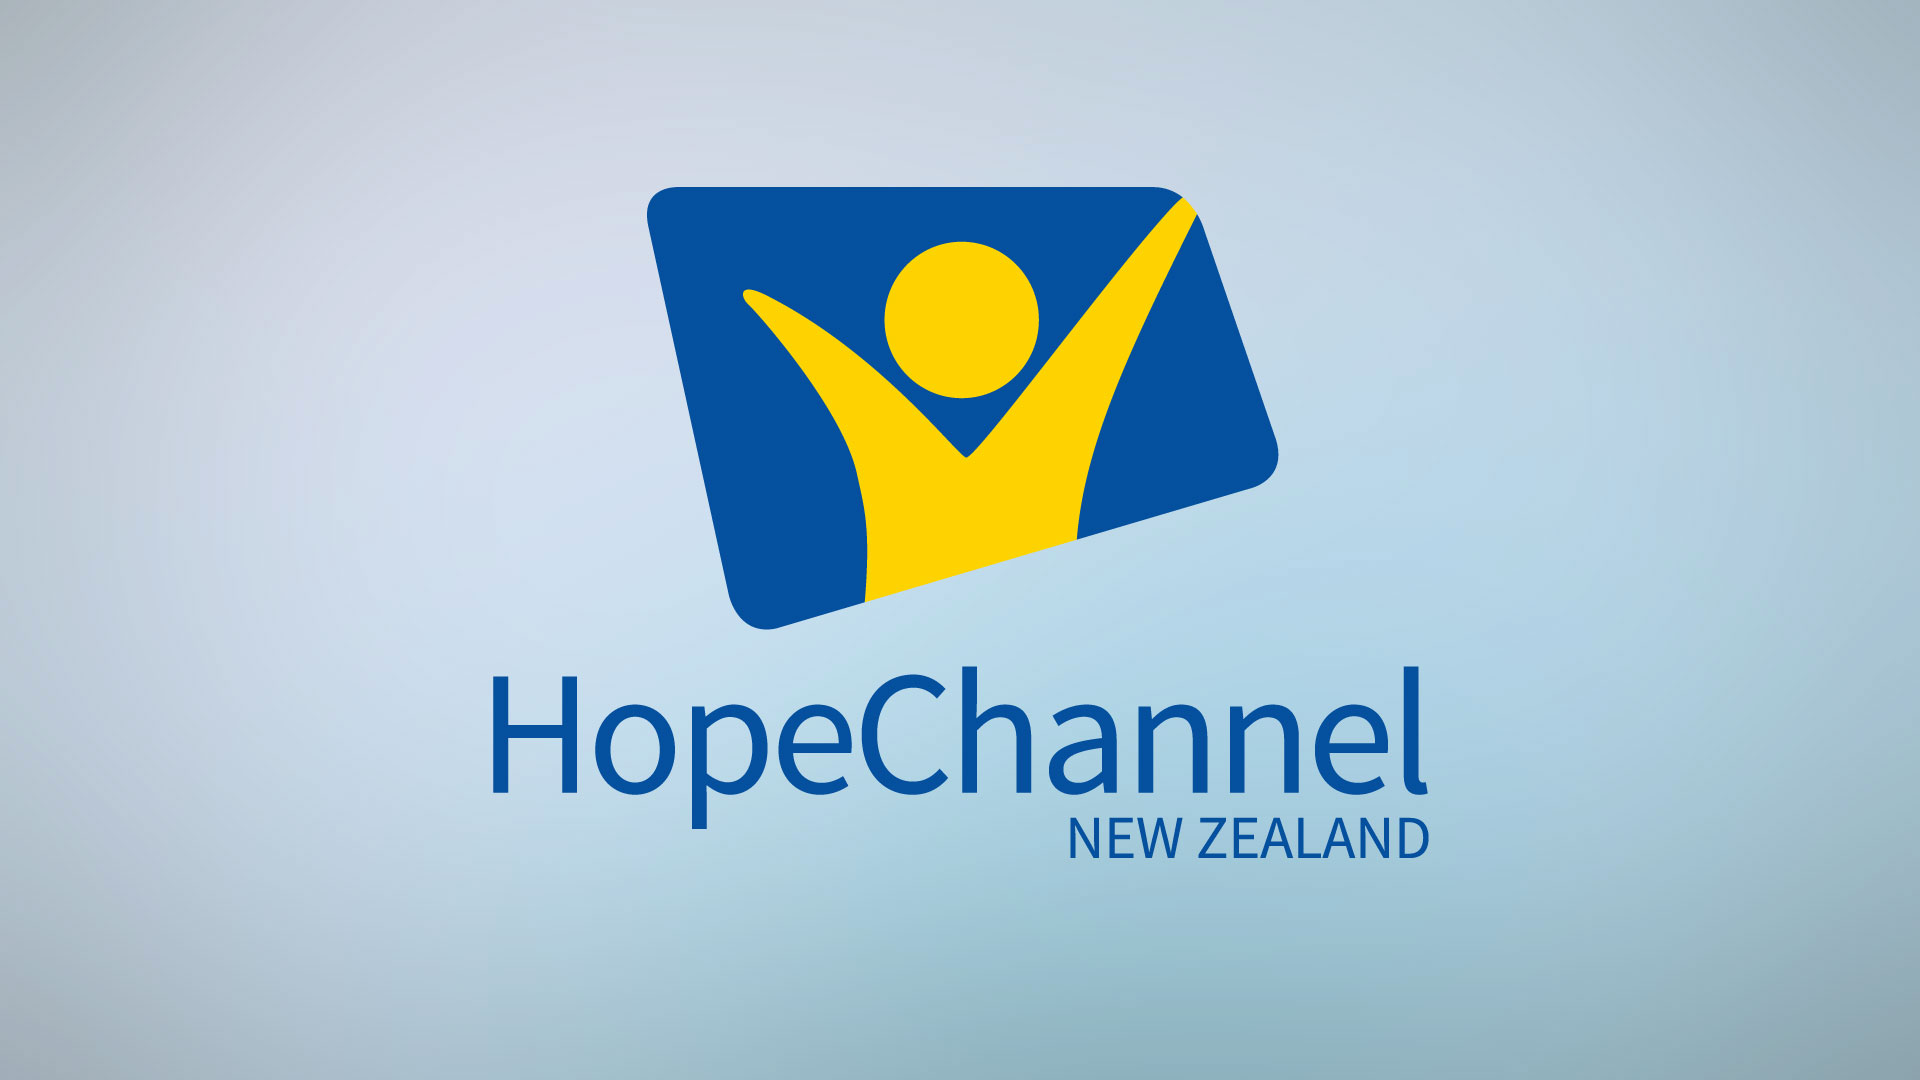 Hope Channel NZ